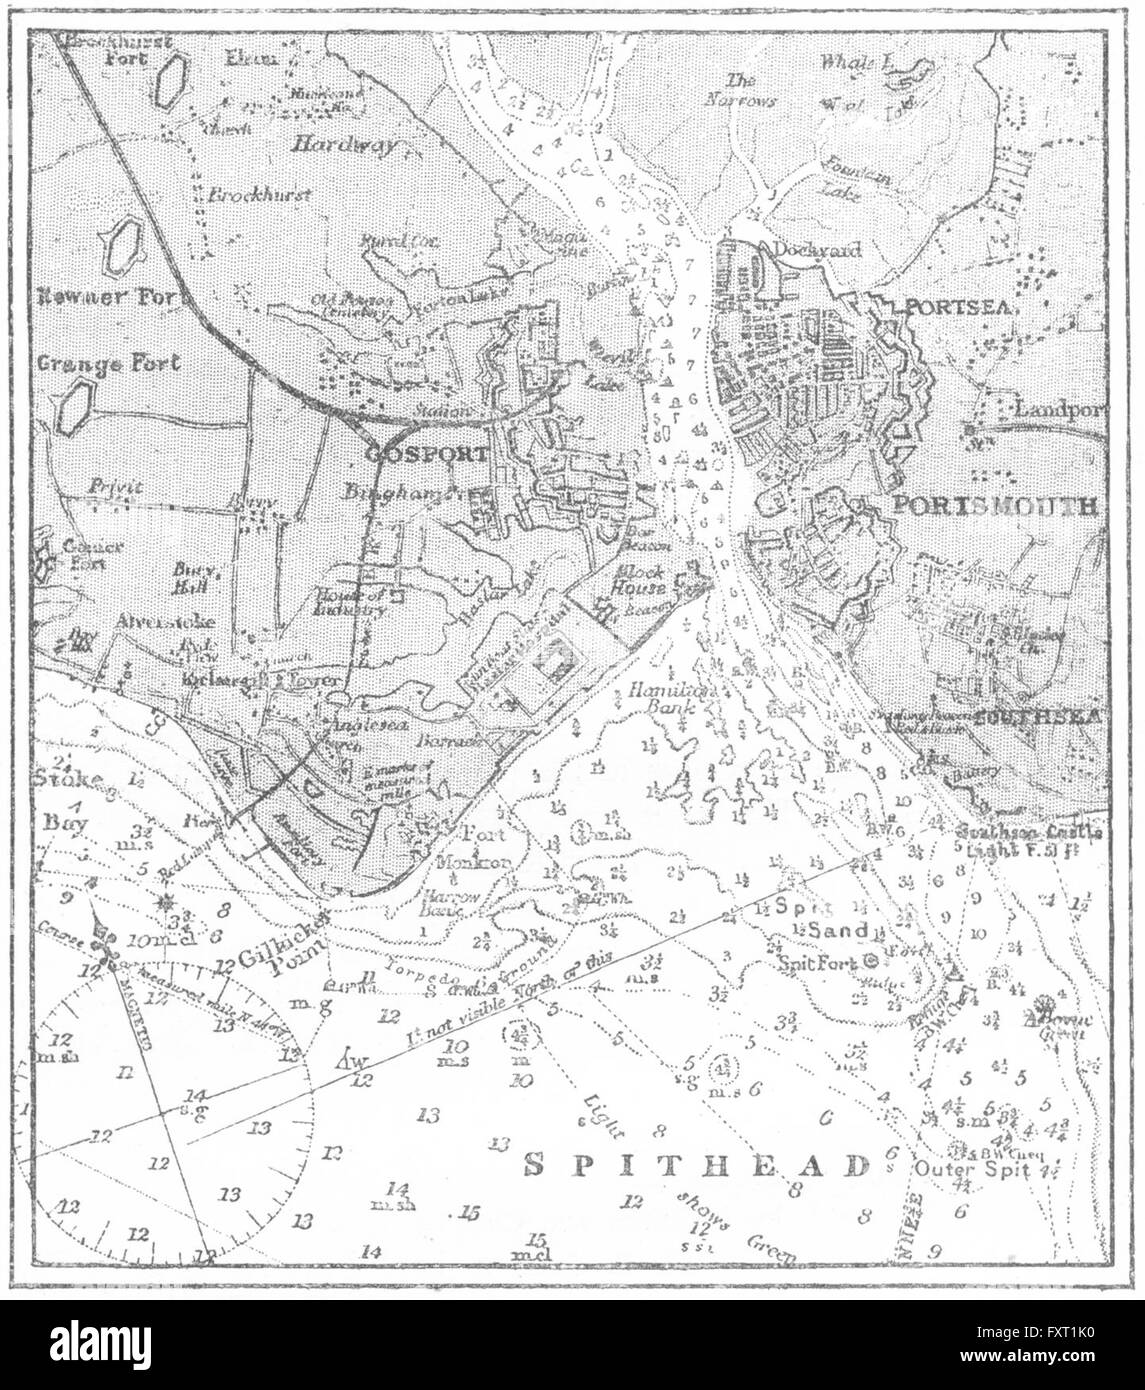 HANTS: Portsmouth, sketch map, c1885 - Stock Image